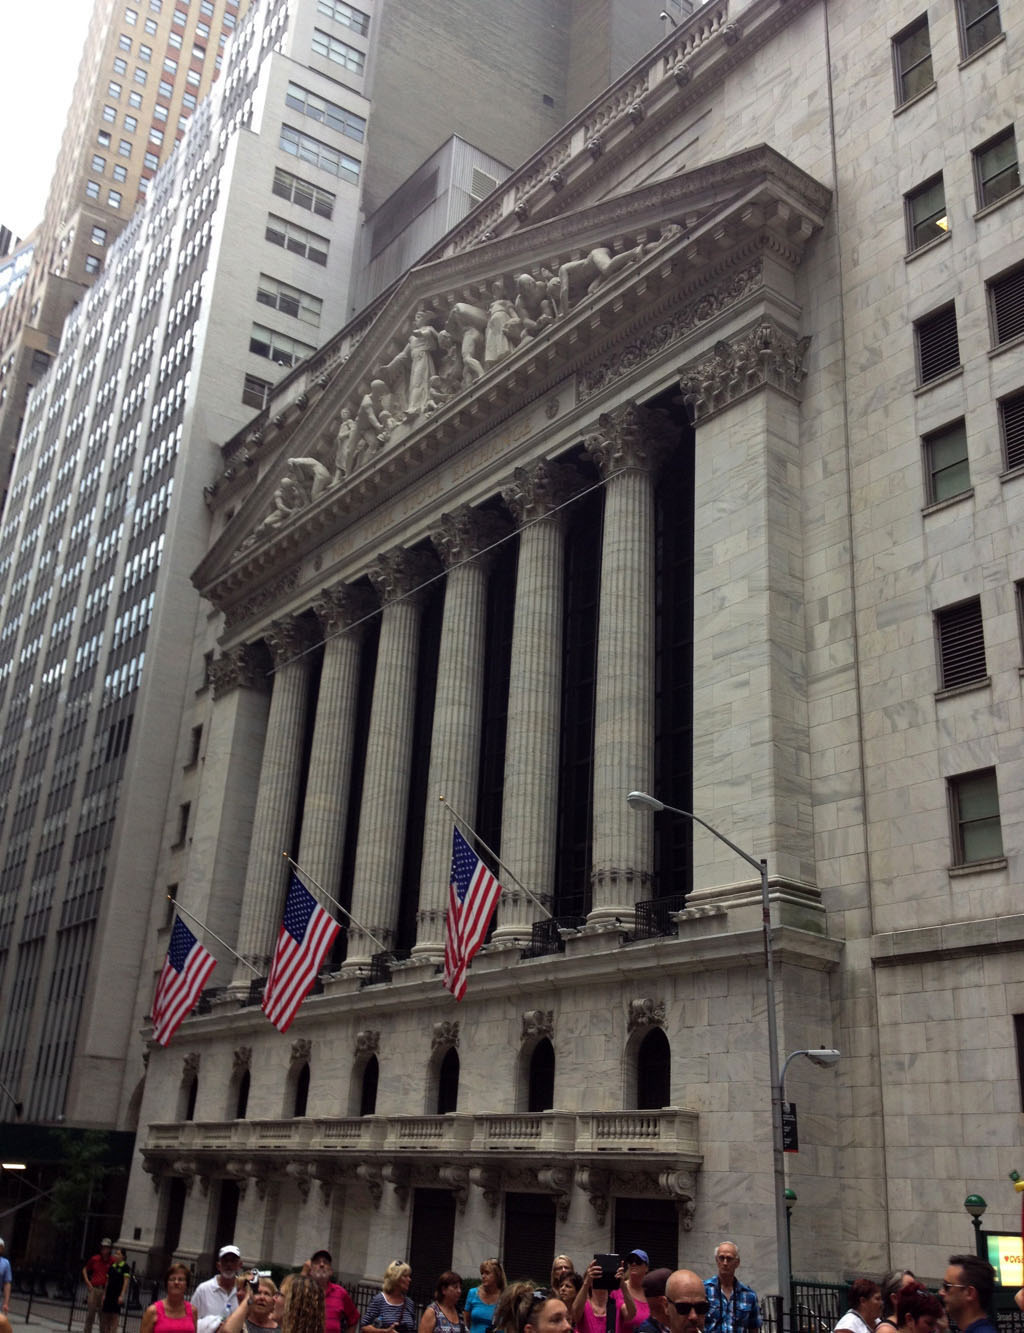 Voyage, mes incontournables pour visiter new-york, bourse, wall street